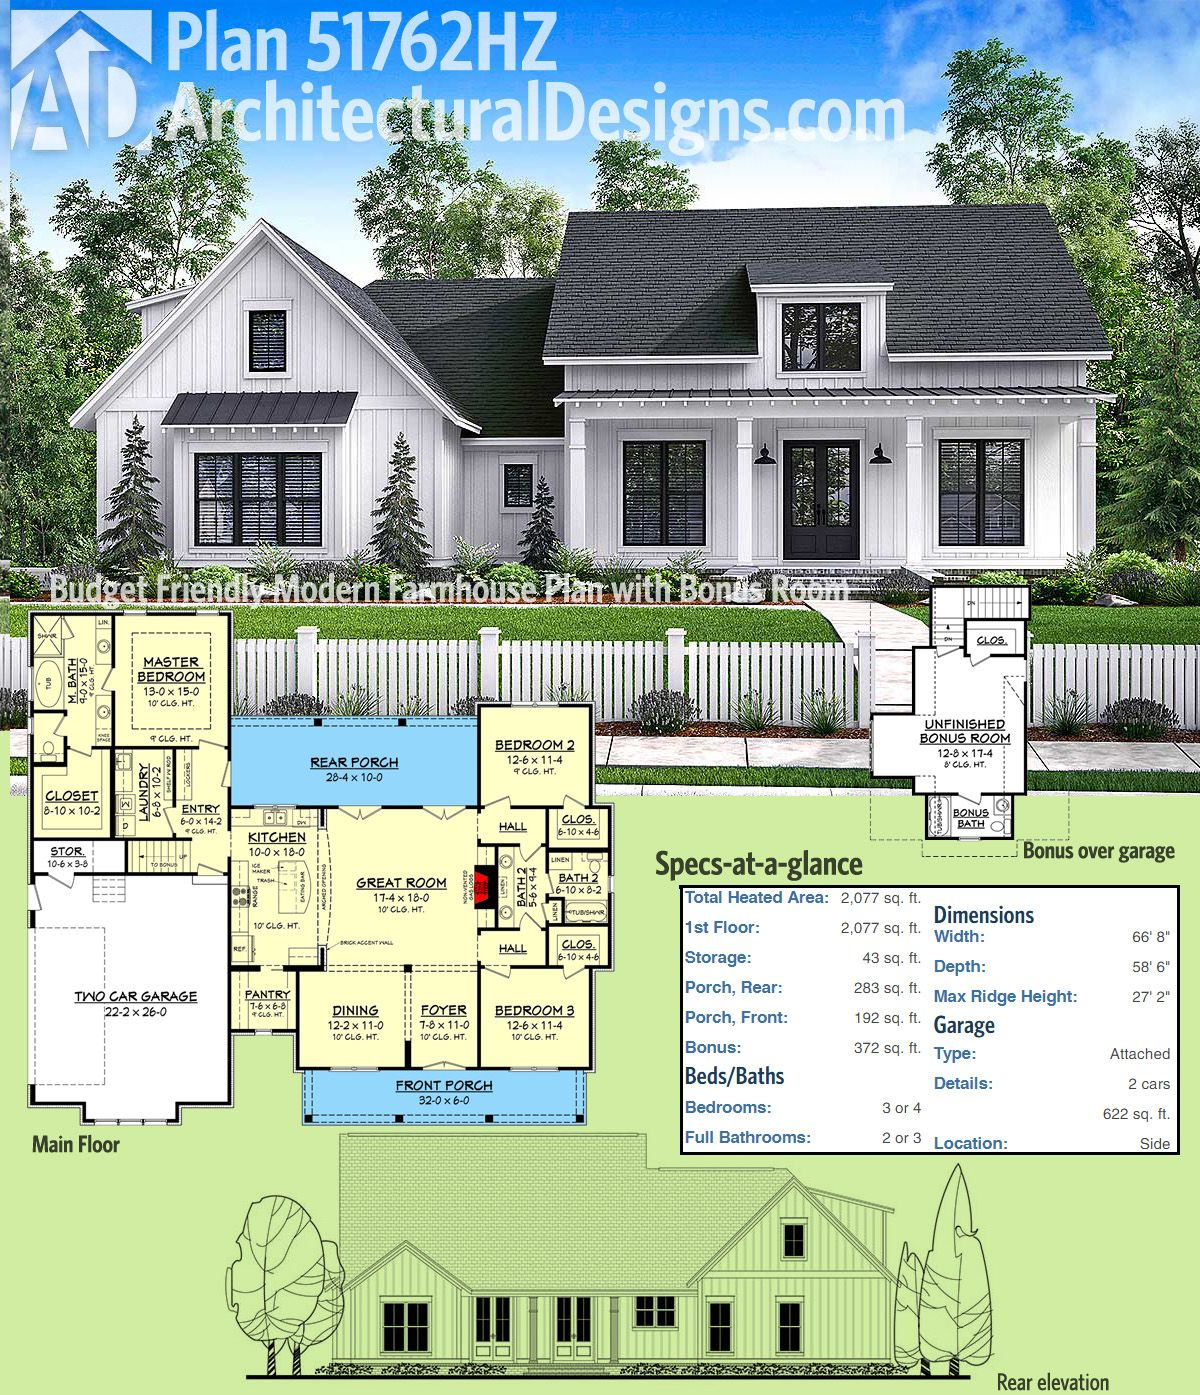 plan 51762hz budget friendly modern farmhouse plan with bonus room rh pinterest com